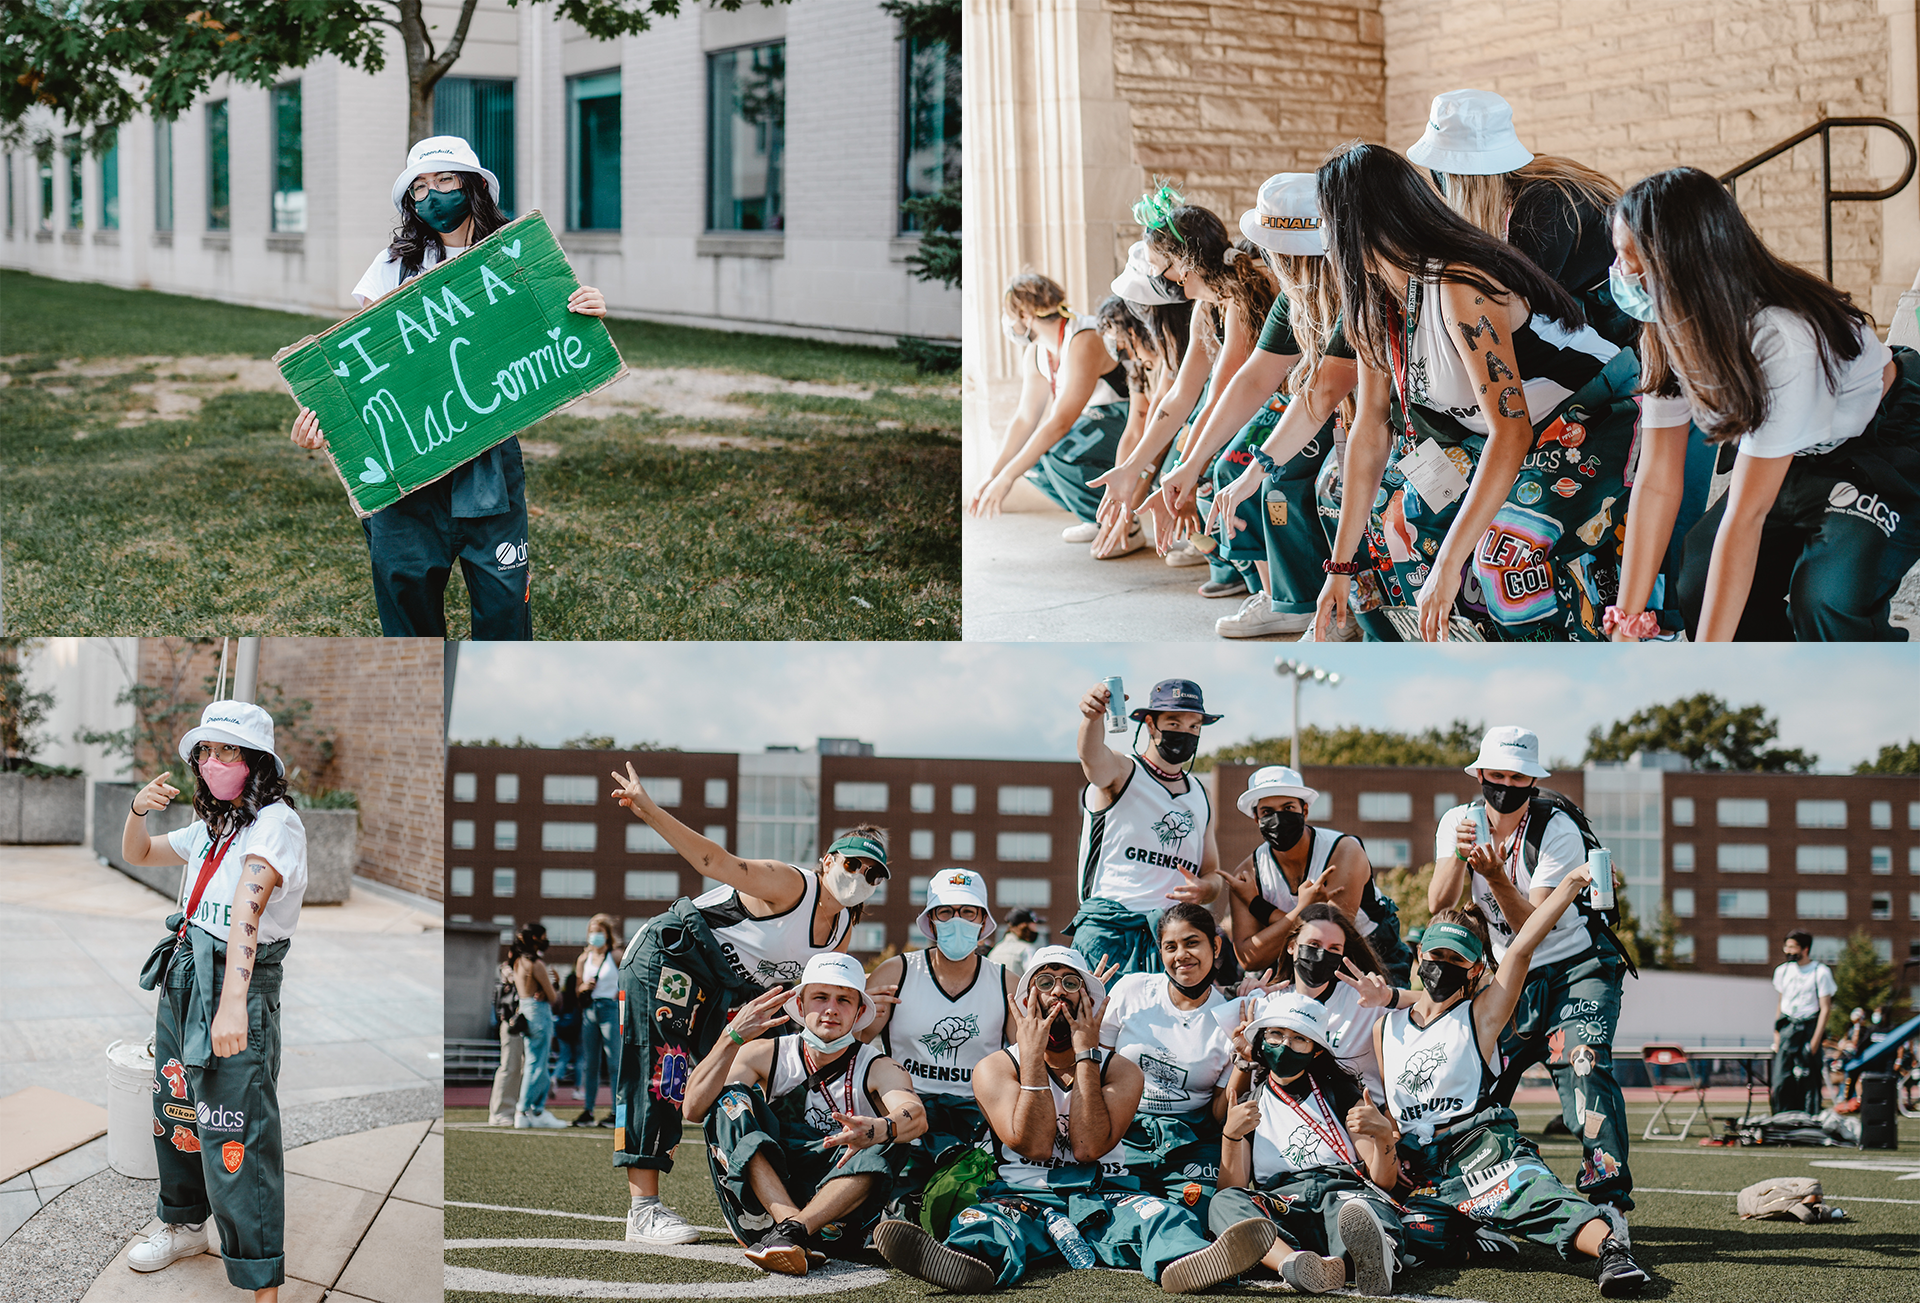 Collage of Greensuits on campus